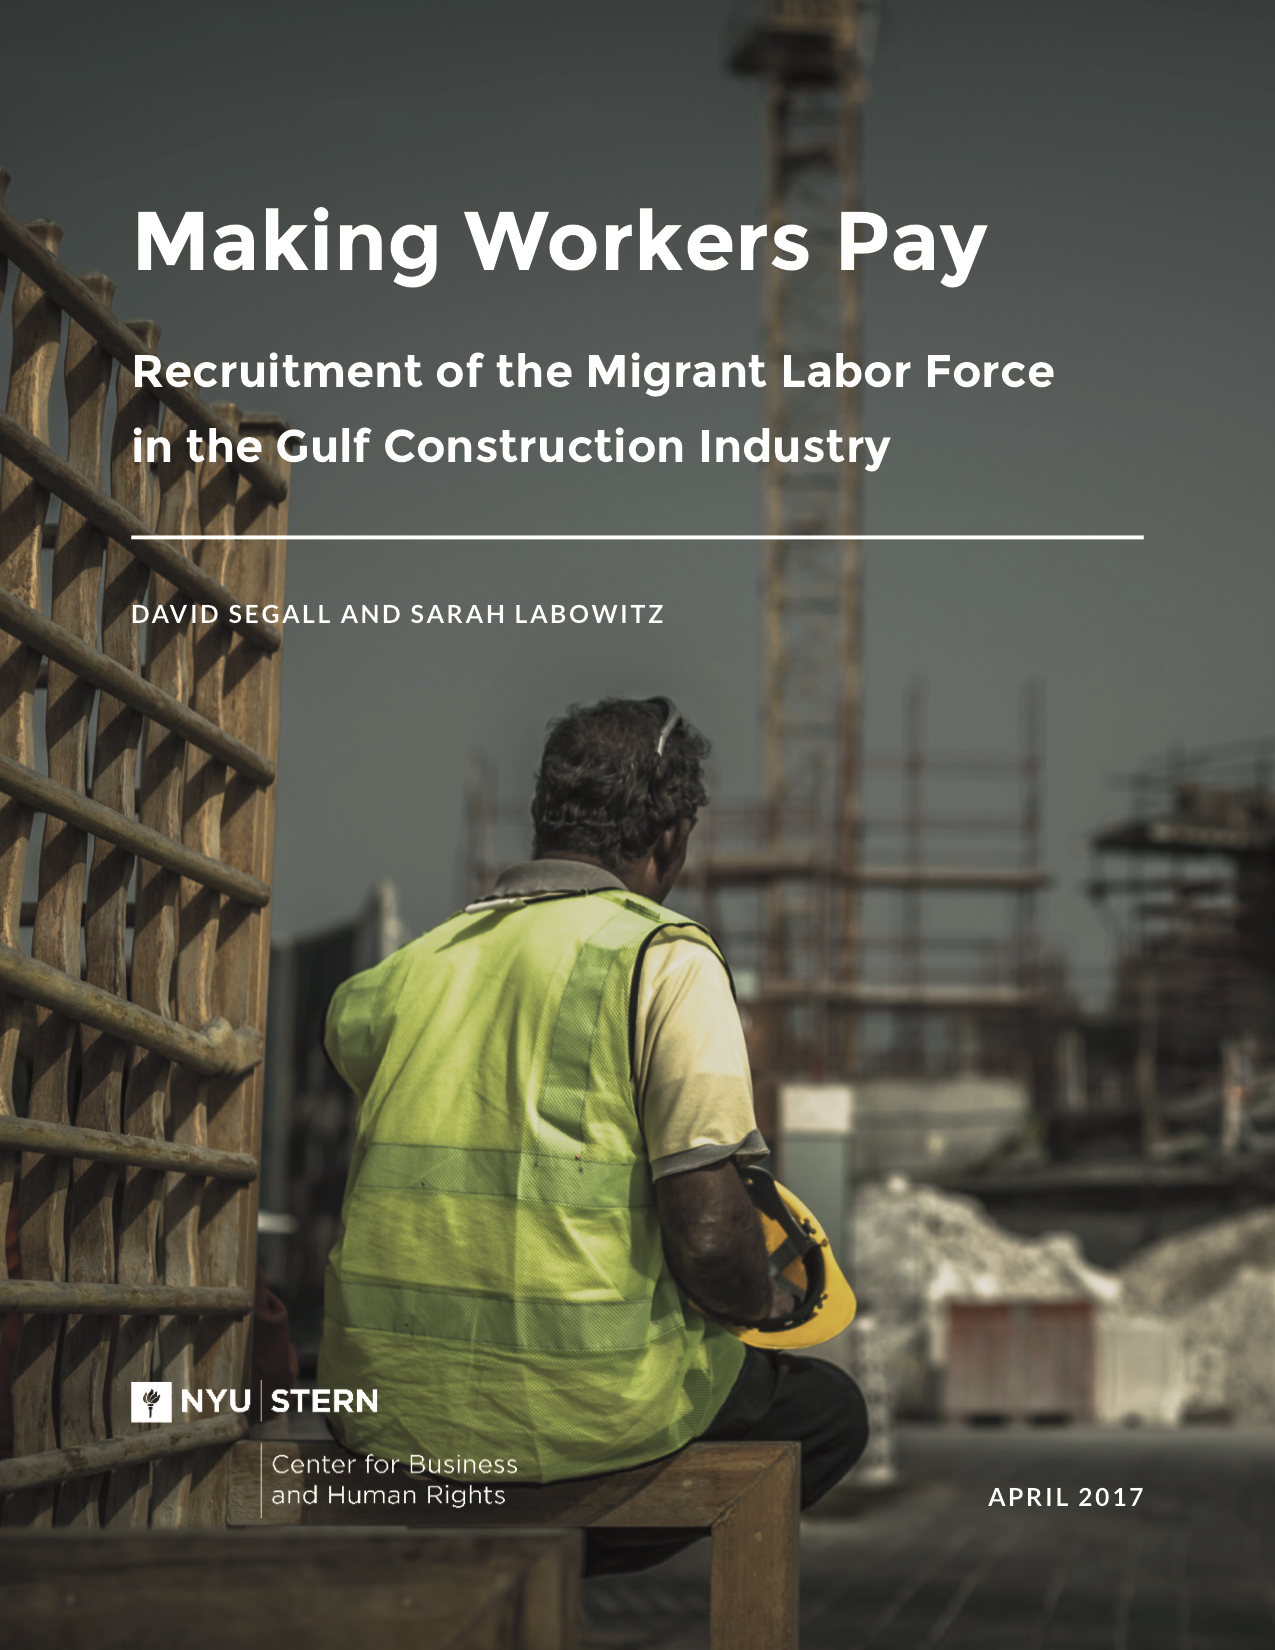 Report - Making Workers Pay - Under Embargo Through April 11